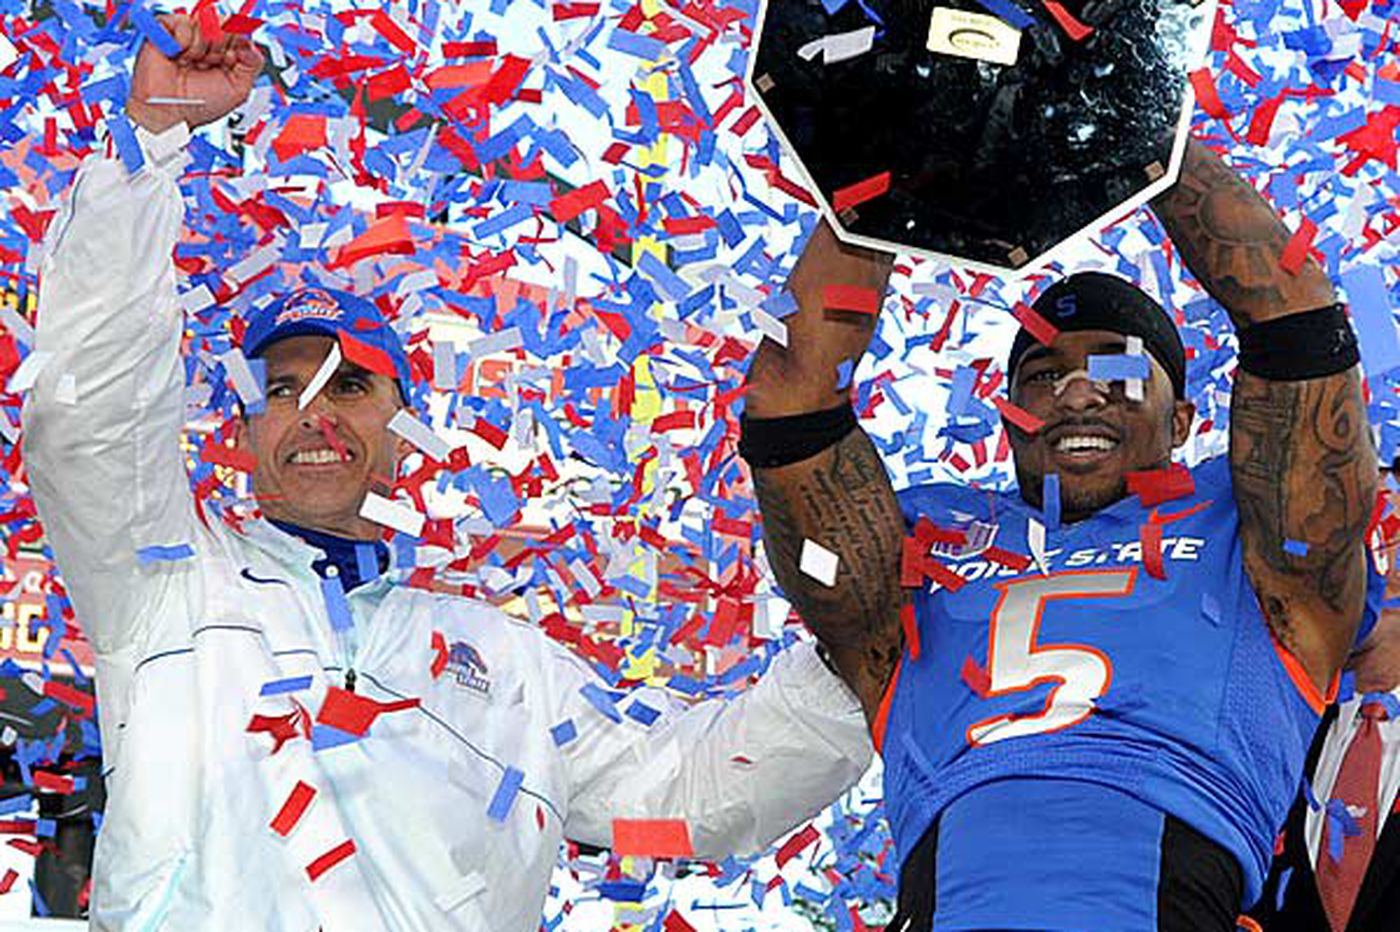 Sports in Brief: Boise St. wins Vegas Bowl